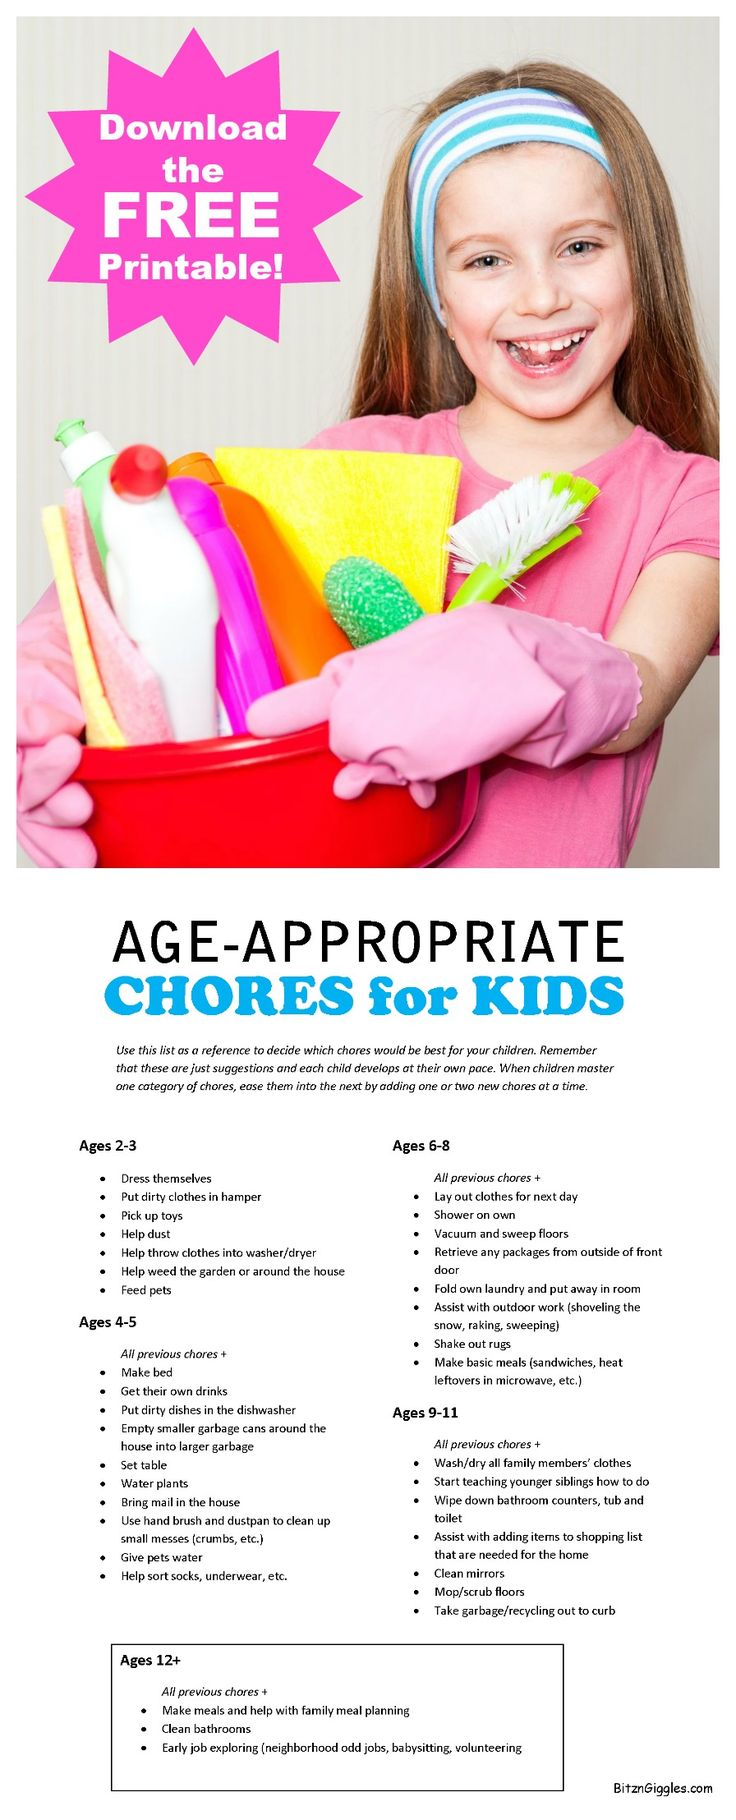 Age-Appropriate Chores for Kids! DIY Printables for Kids!